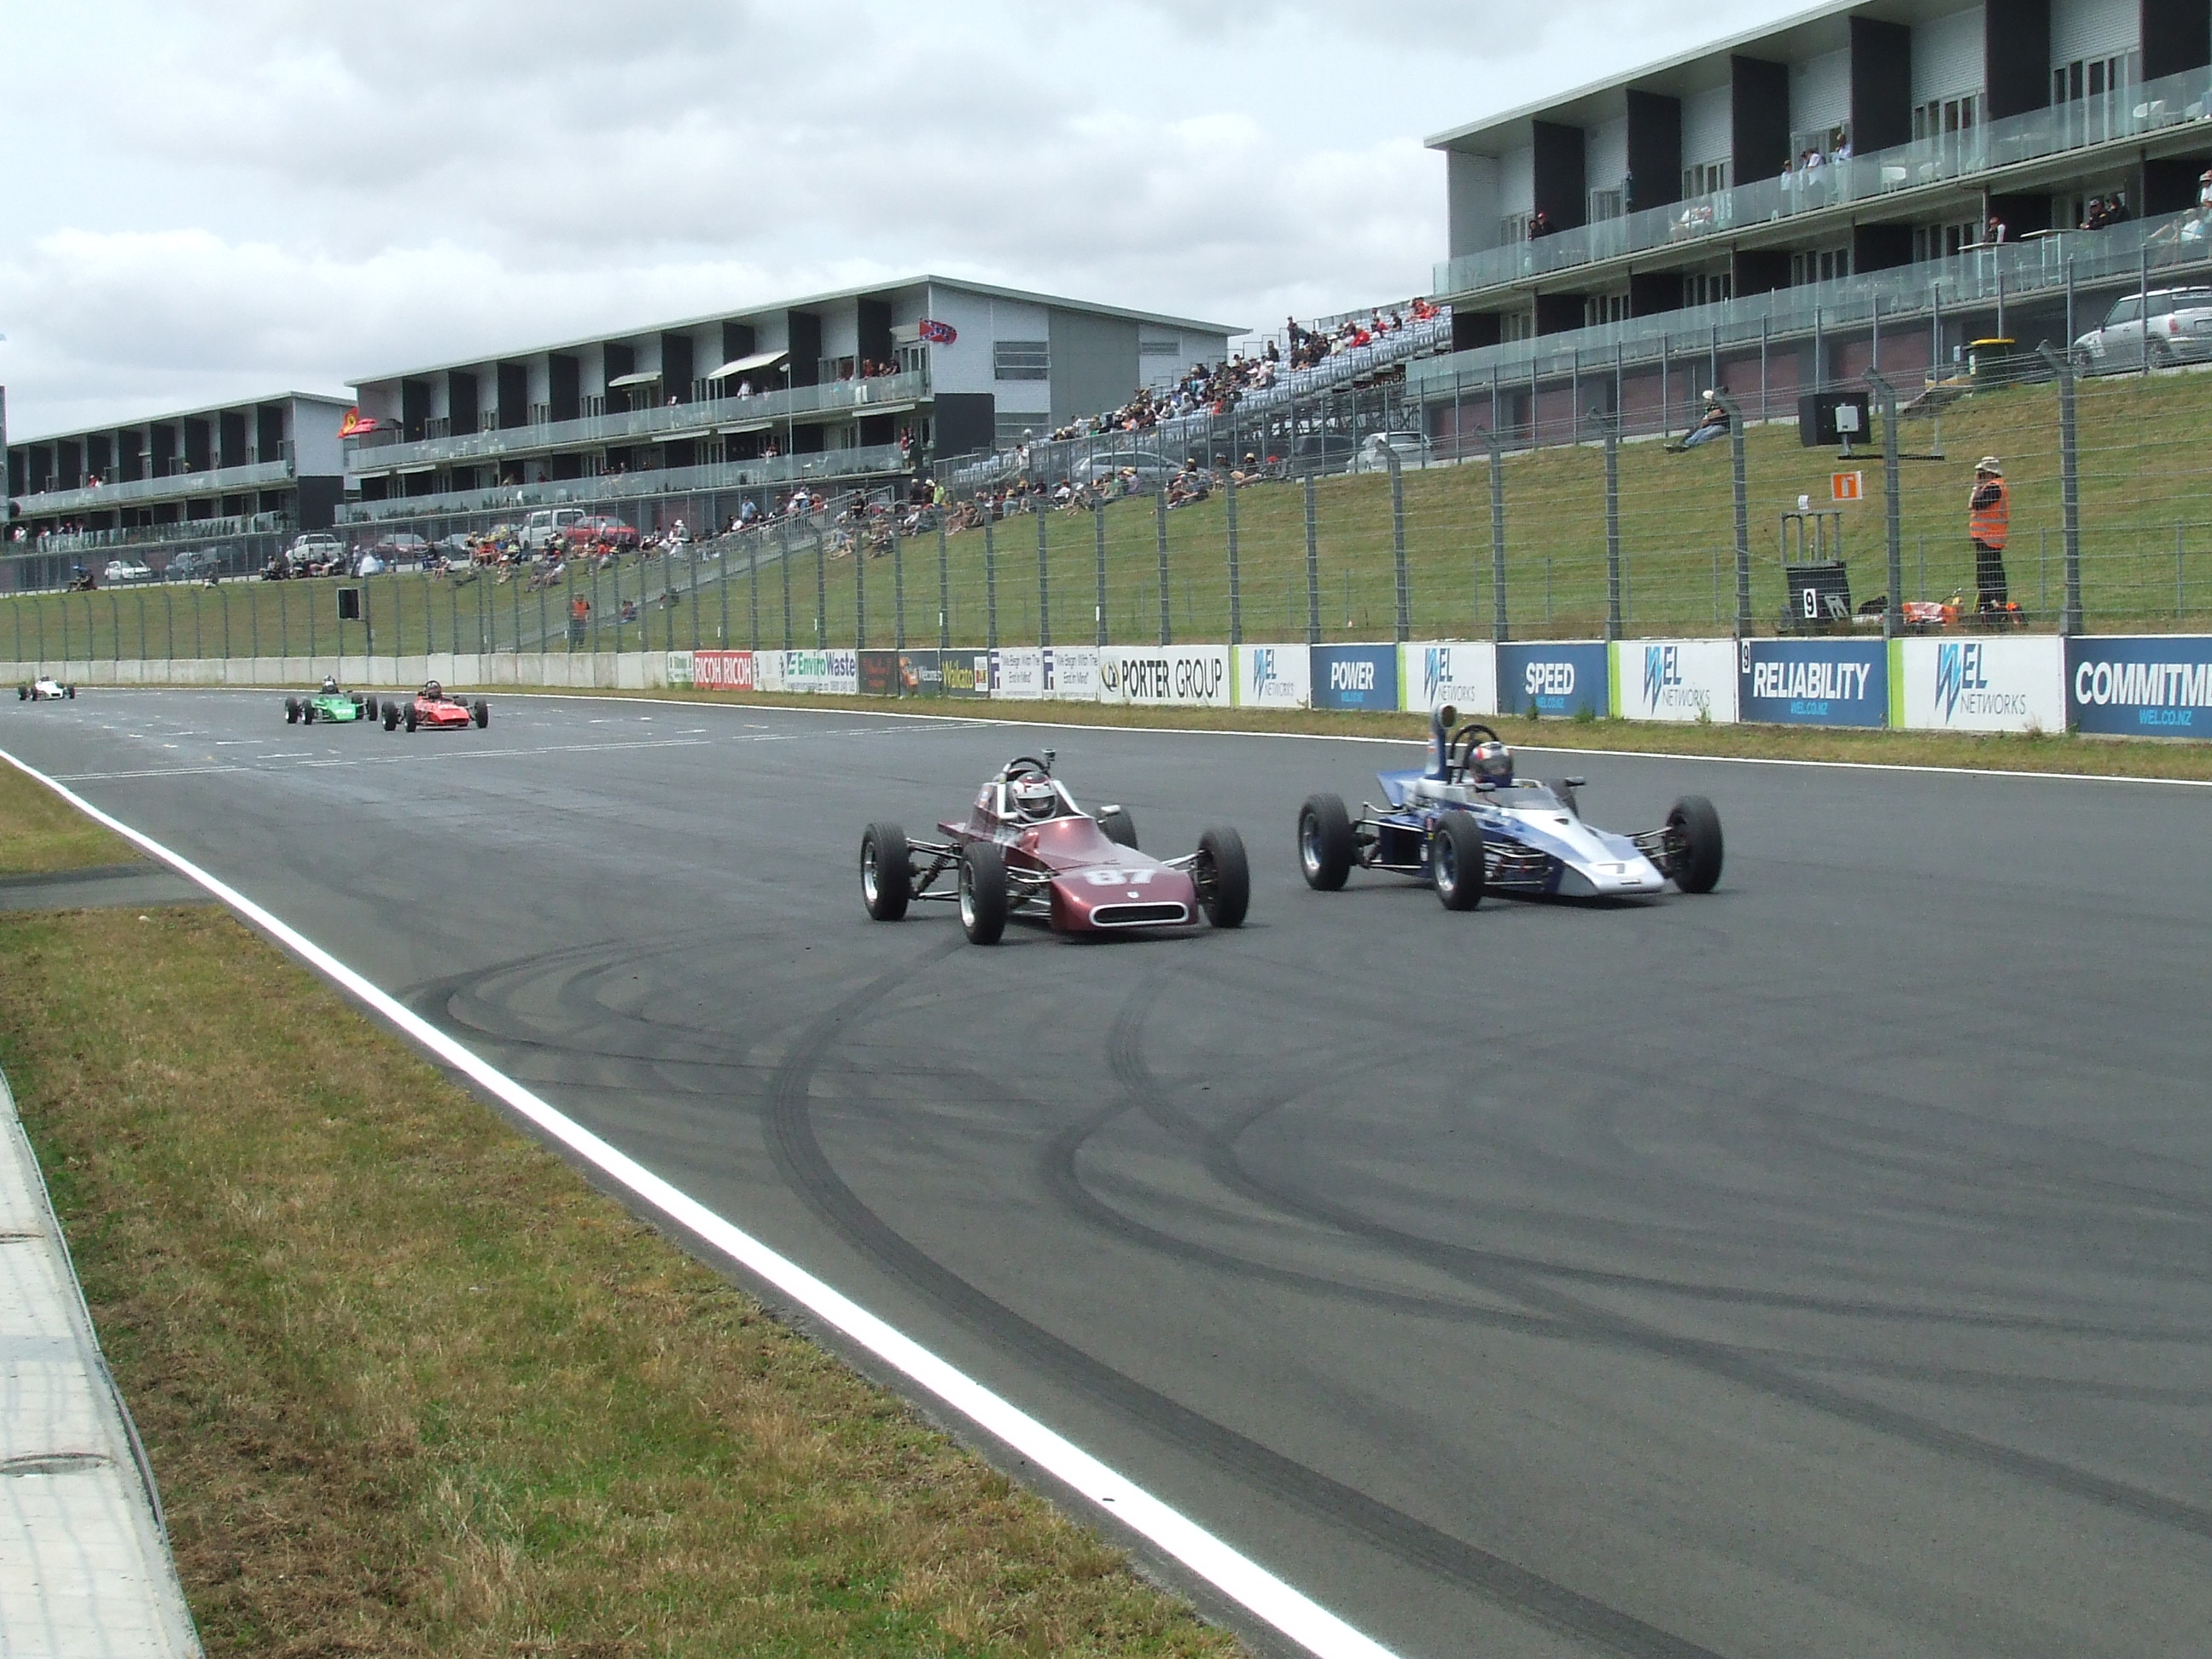 Jacob Bonish (87) and Mike Creswell (7) head to the first corner, neck and neck